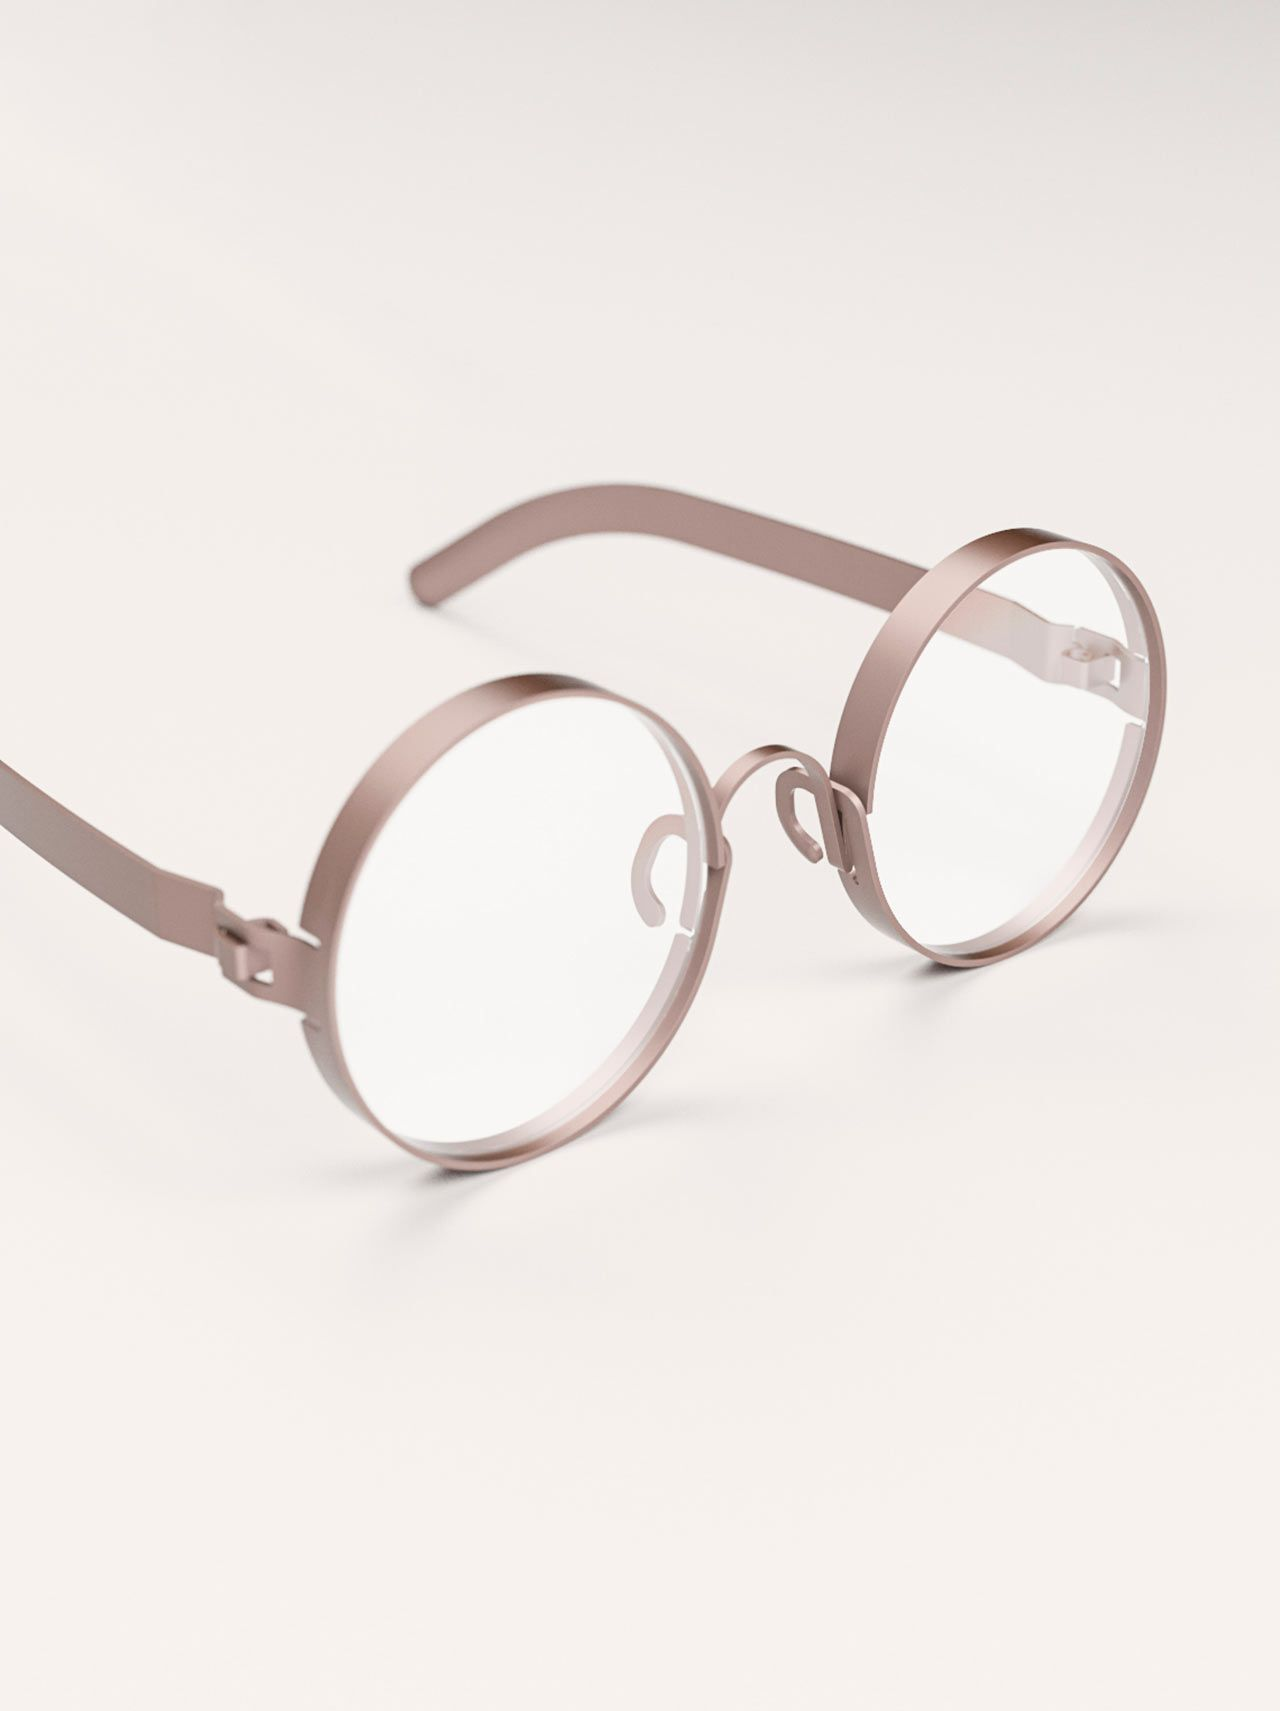 FRAME  Eyeglasses Cut From Sheet Metal to Reduce Waste   Style ... bcb2300830